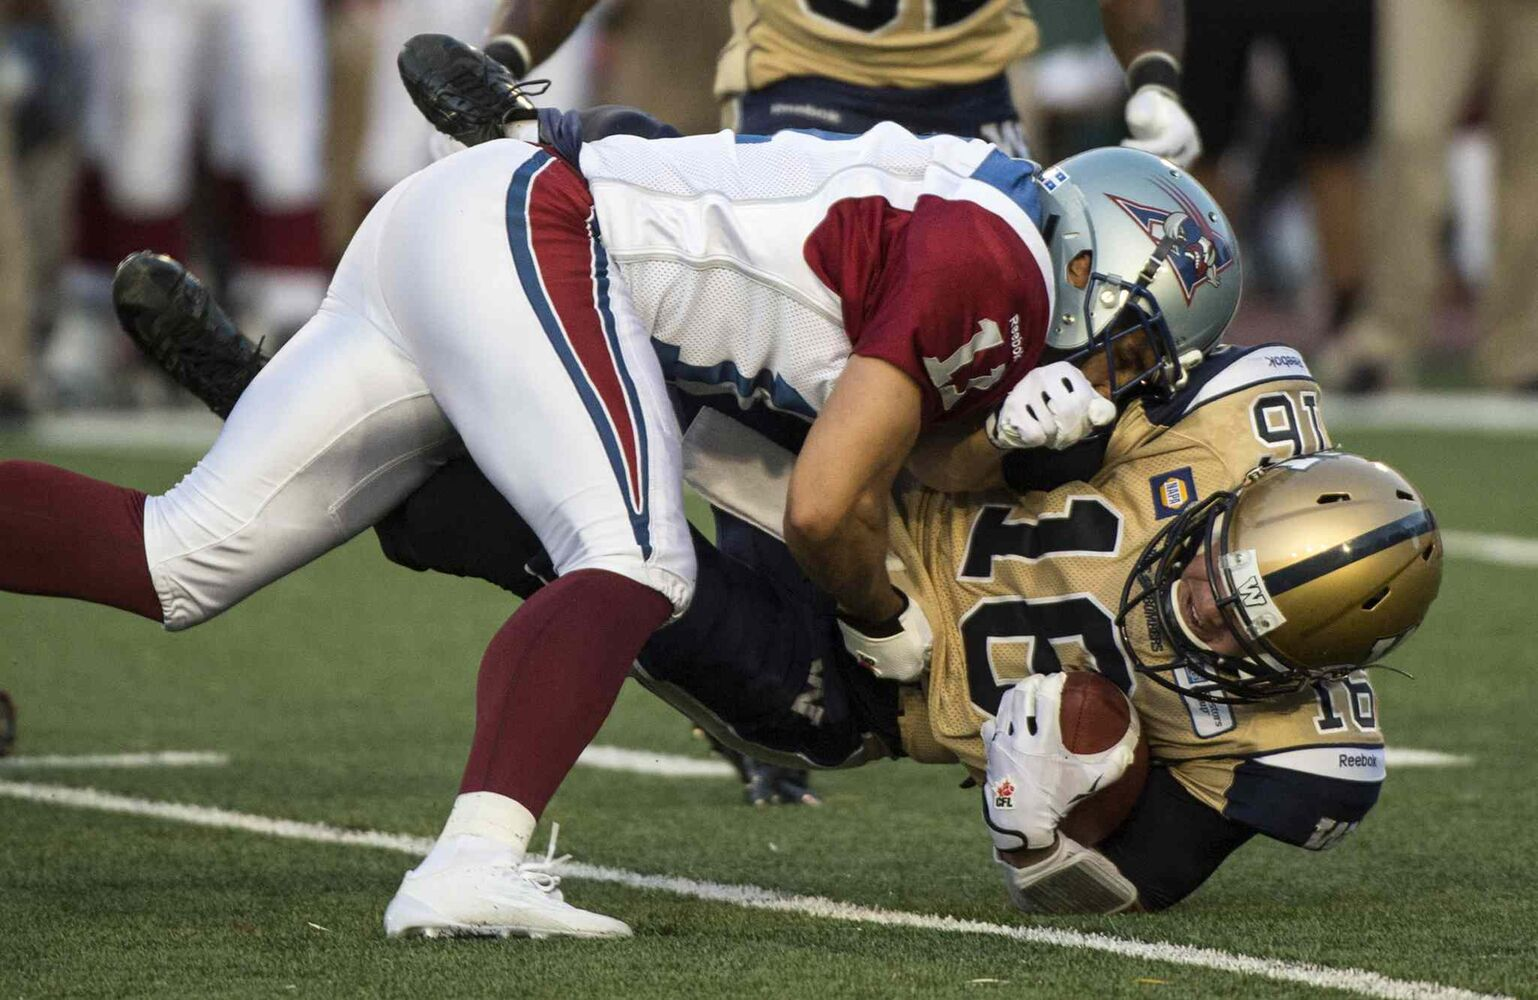 Winnipeg Blue Bombers' quarterback Robert Marve is tackled by Montreal Alouettes' linebacker Chip Cox in the second quarter of Friday's game.